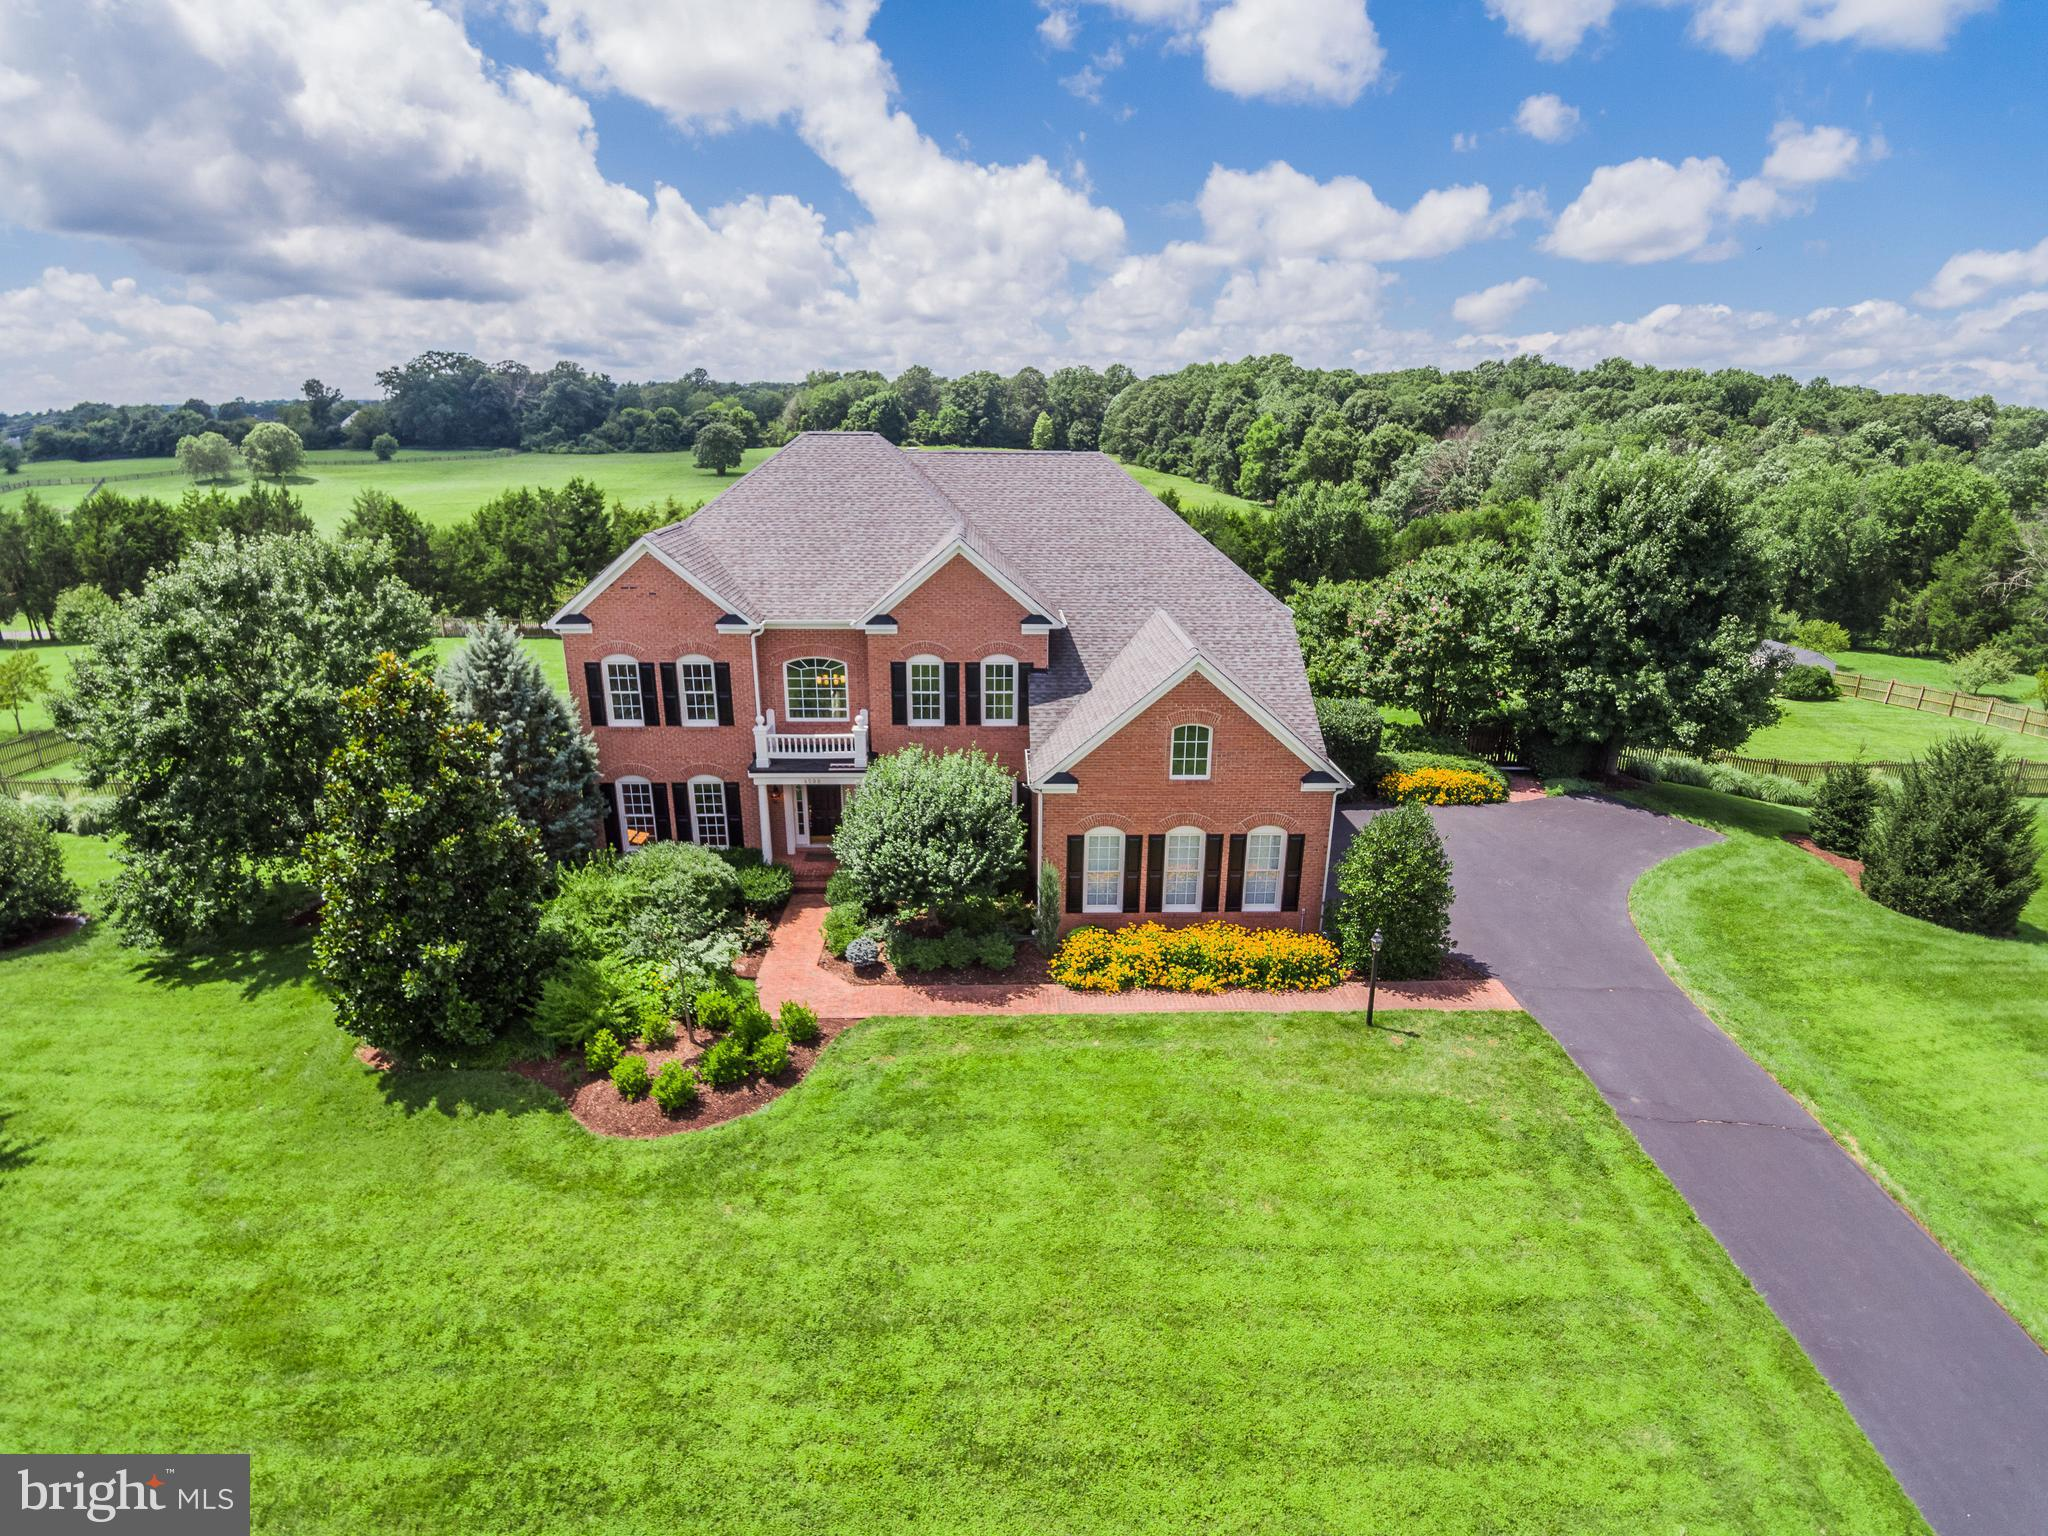 4500 TULLAMORE ESTATES ROAD, GAINESVILLE, VA 20155